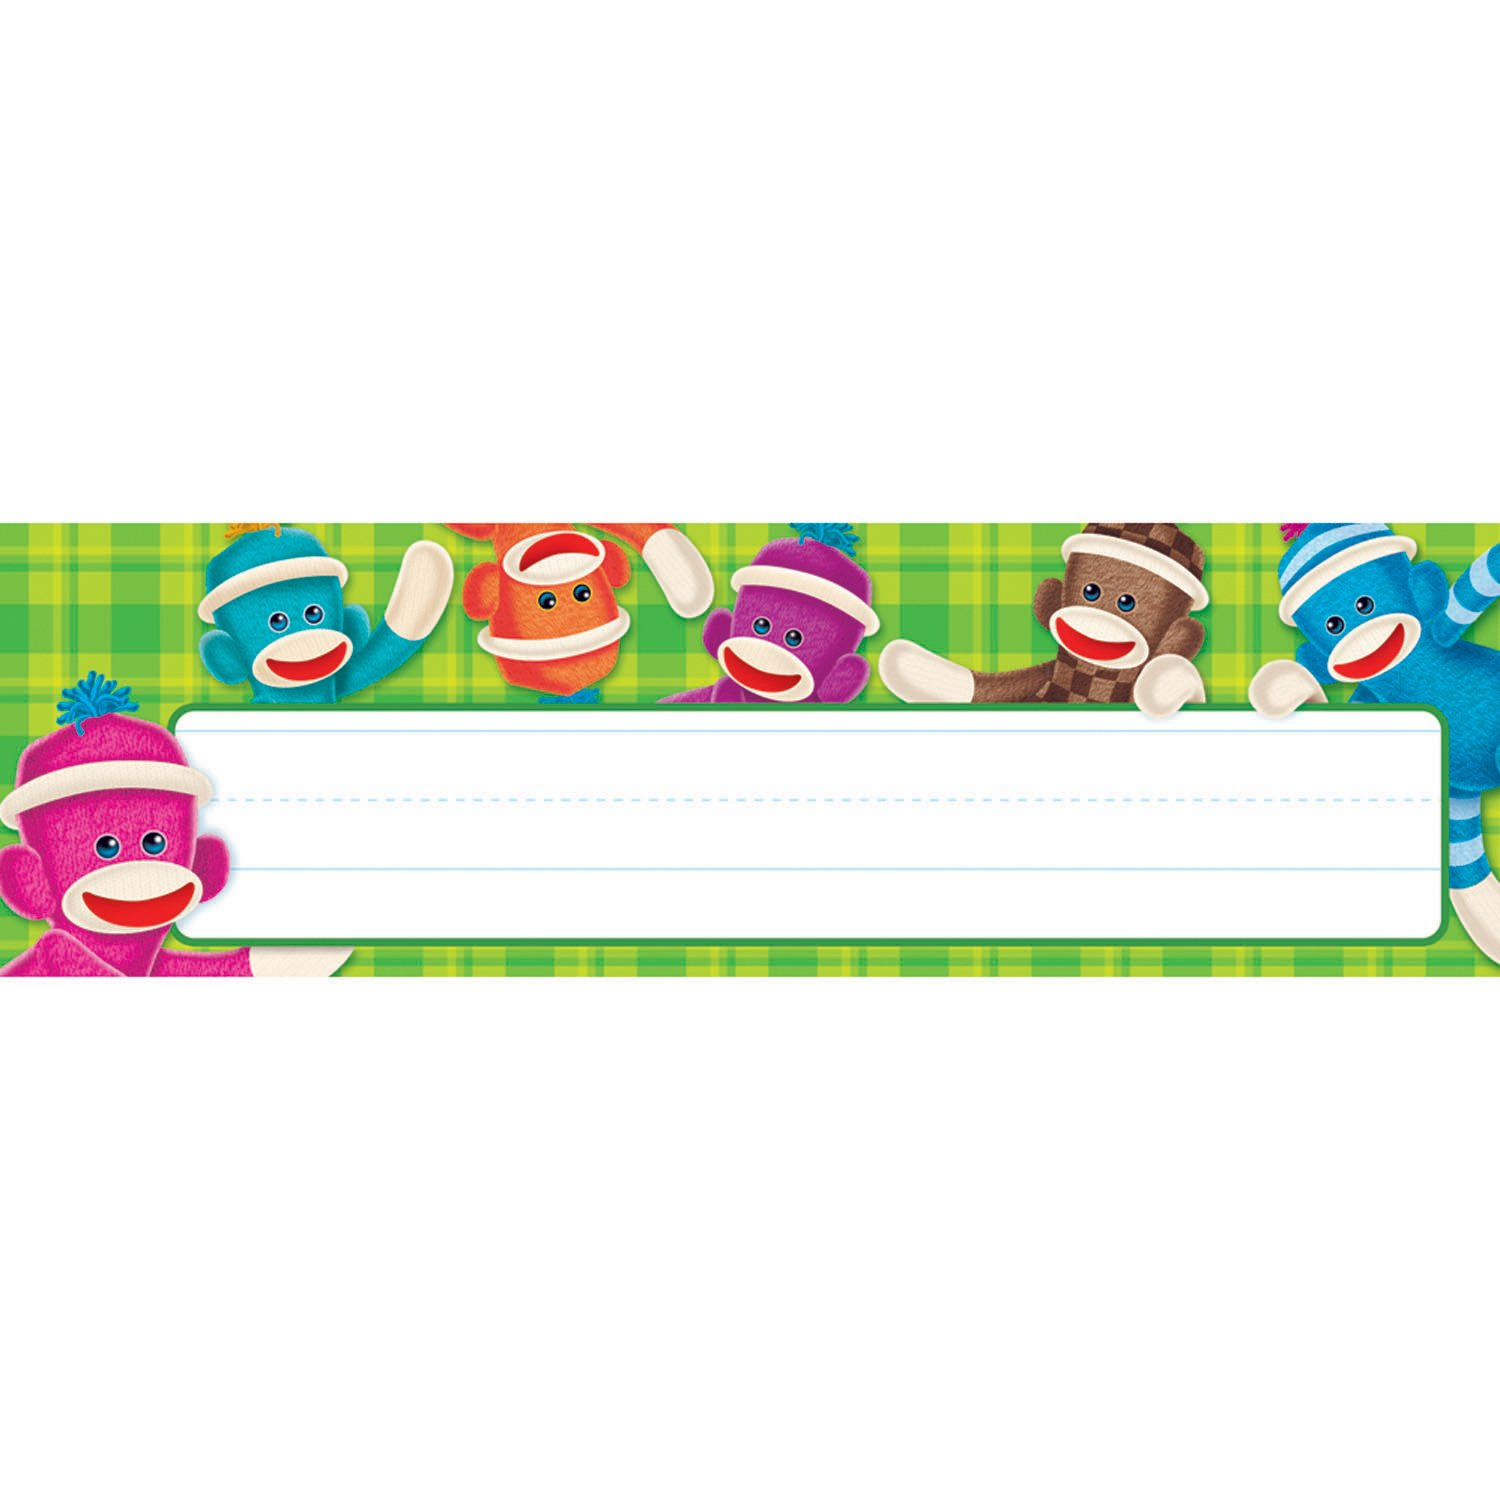 TREND enterprises, Inc. Sock Monkeys Desk Toppers Name Plates, 36 ct T-69235